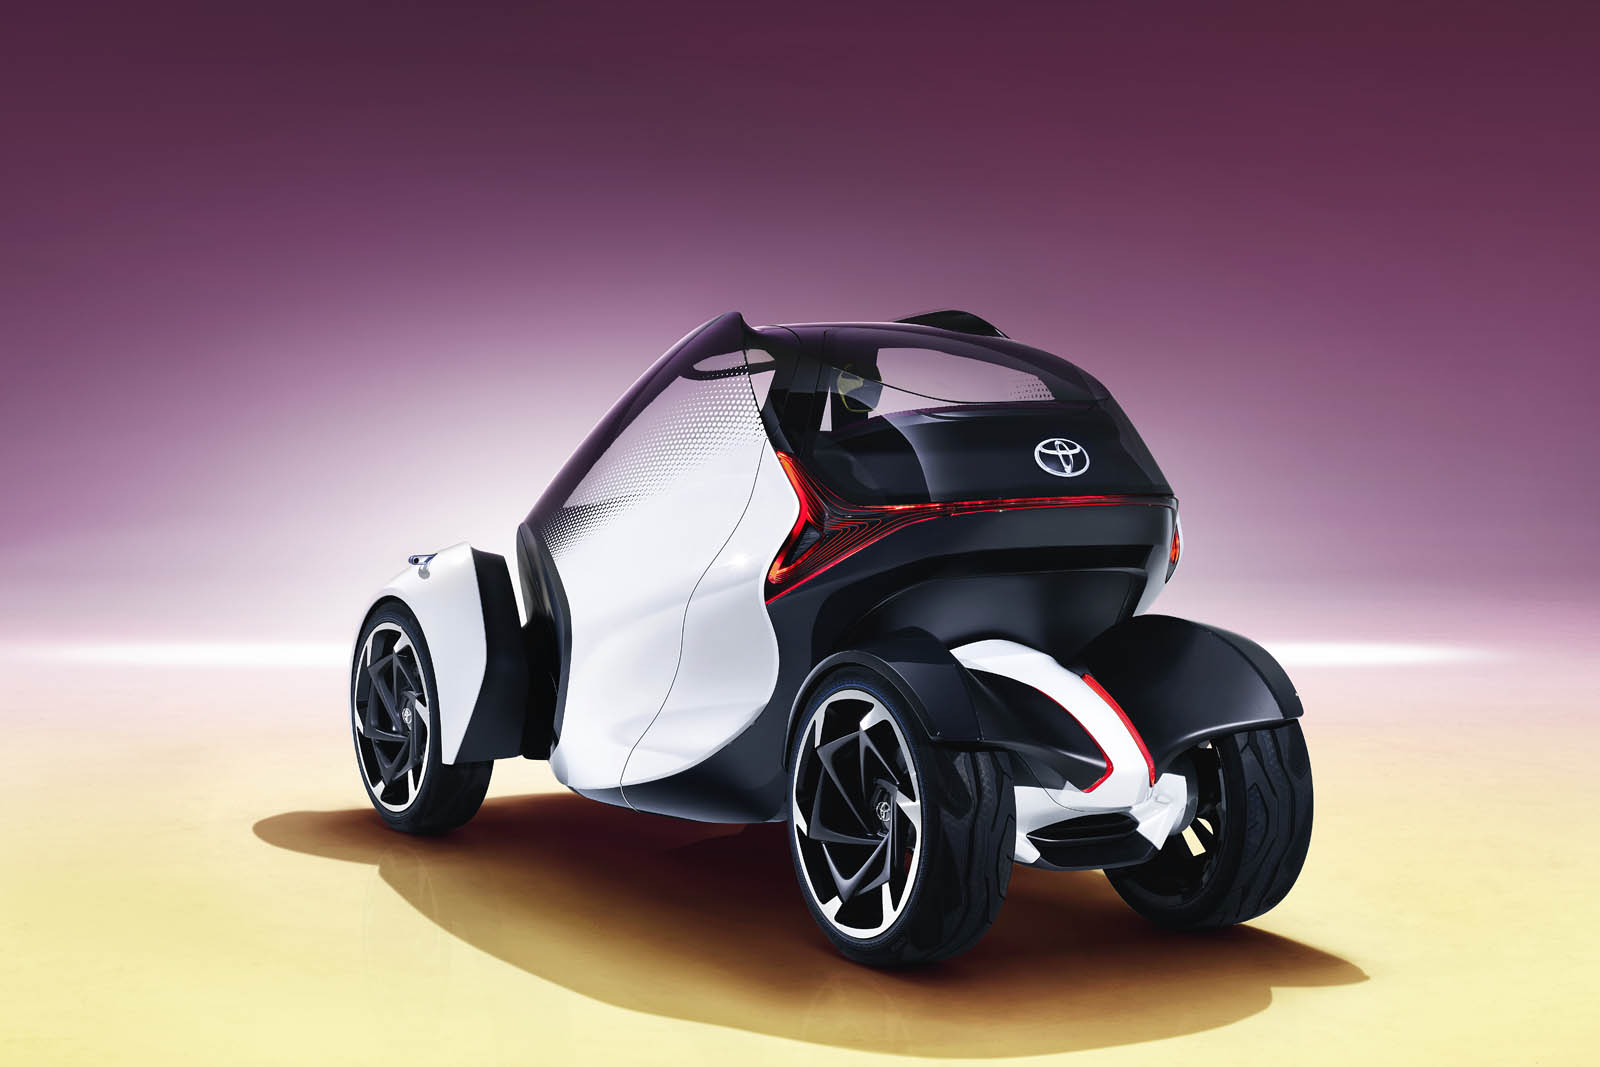 2017_Toyota_Concept_i-Tril_Static_05 copy